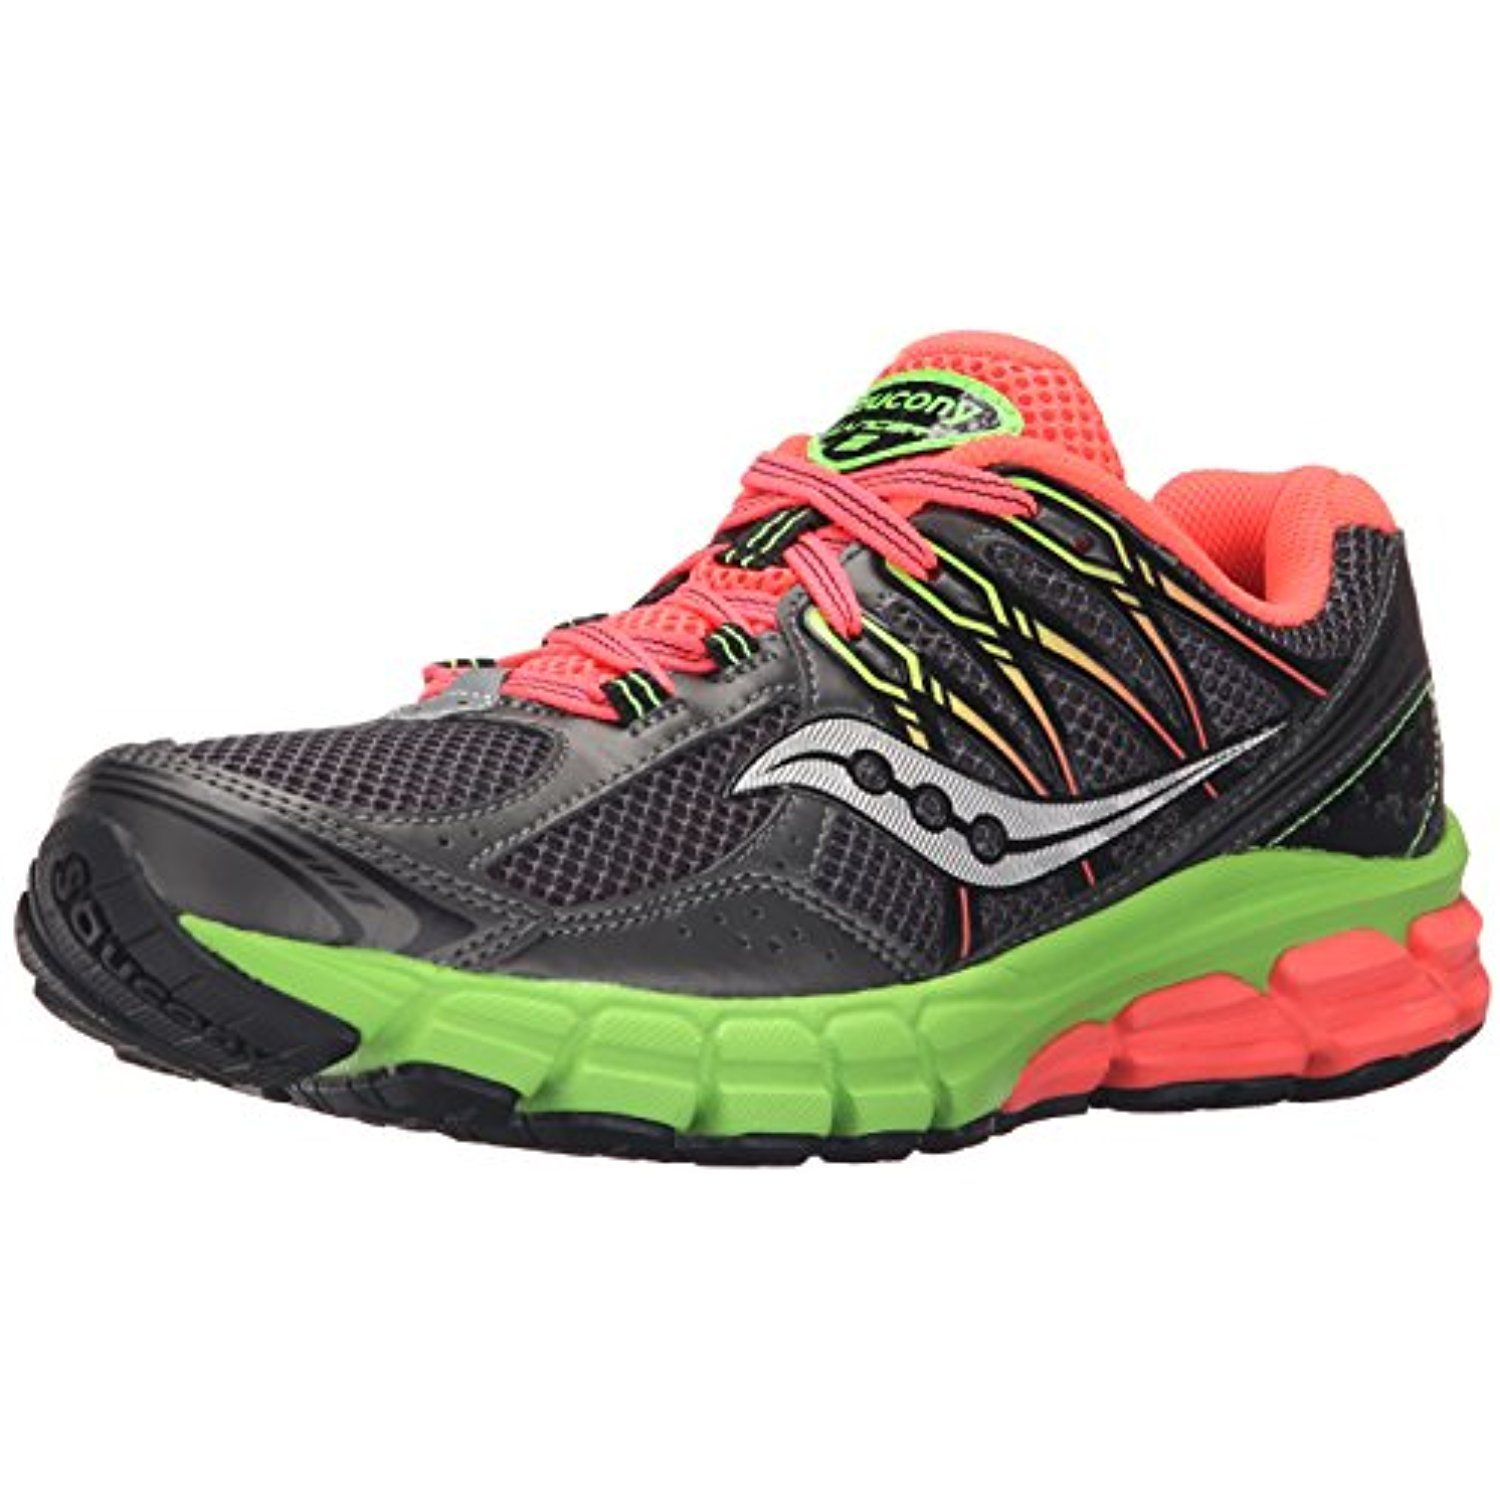 Lancer Women's Sports Running Shoes Top Sellers, UP TO 54% OFF